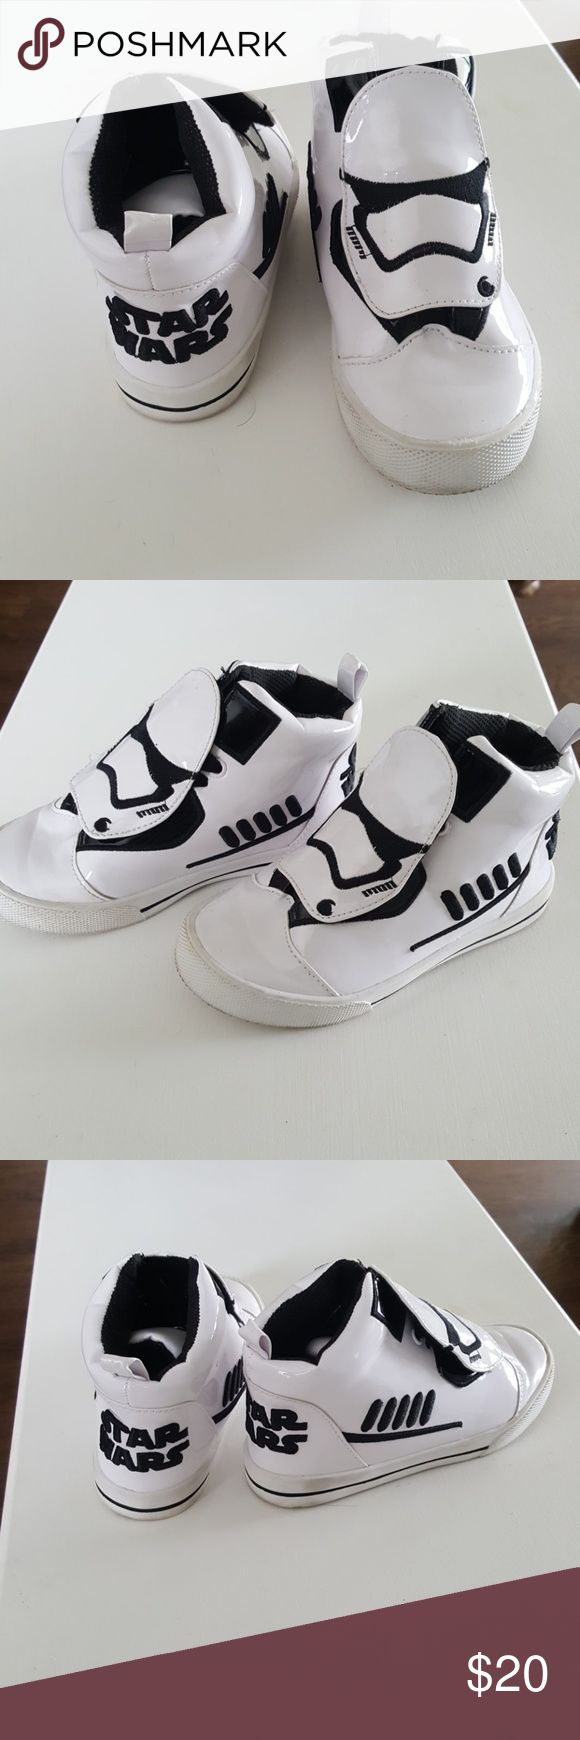 Boys Star Wars Sneakers White Storm Trooper Sneakers for Boys Disney Shoes Sneakers